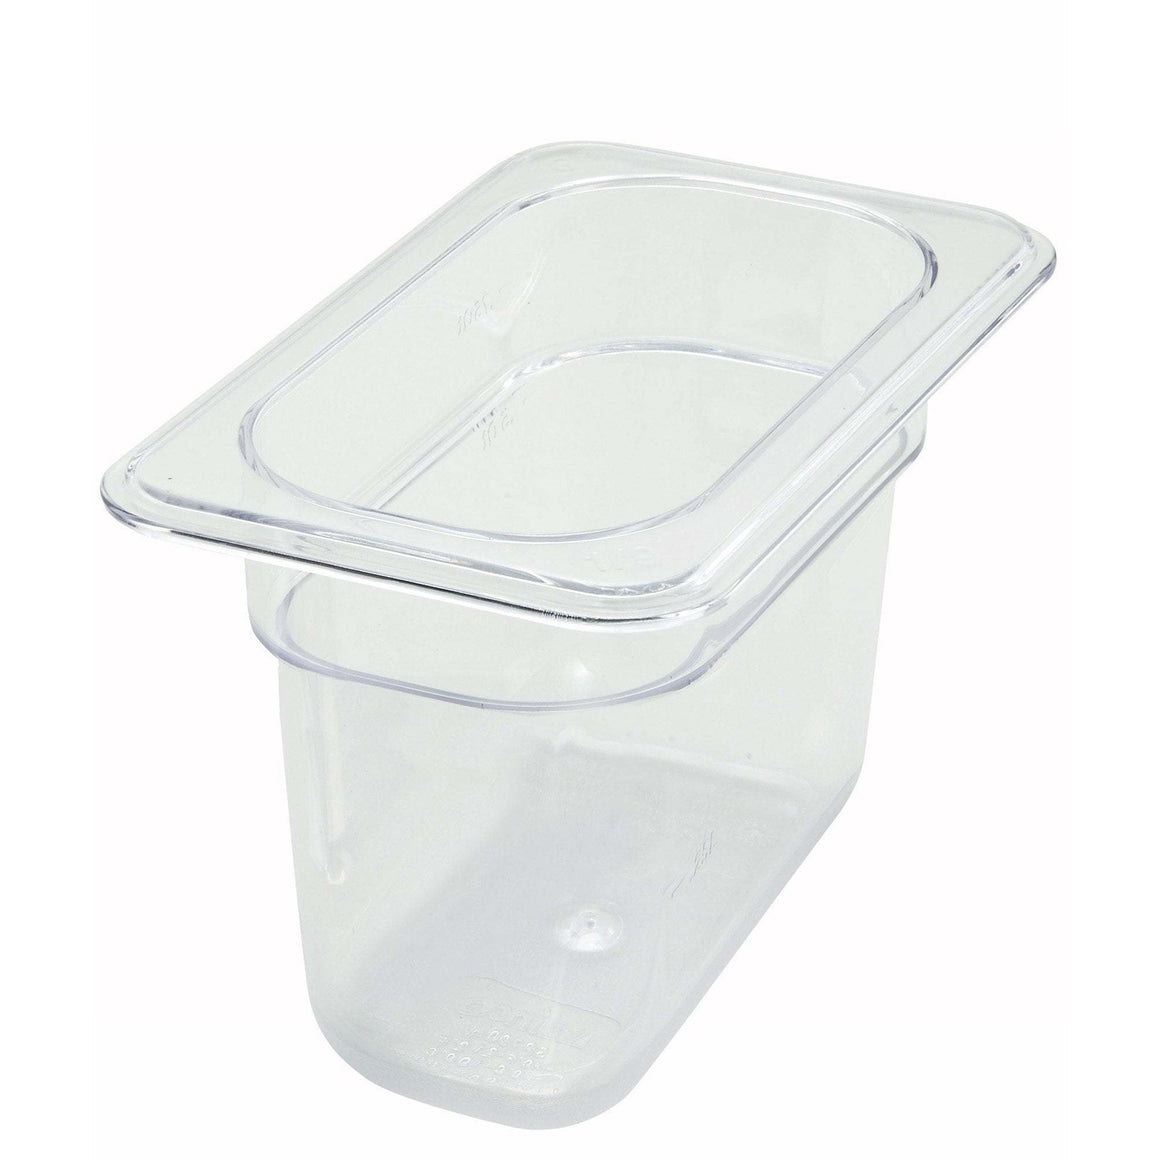 "Winco - SP7906 - PC Food Pan, 1/9 Size, 6"" - Food Storage"